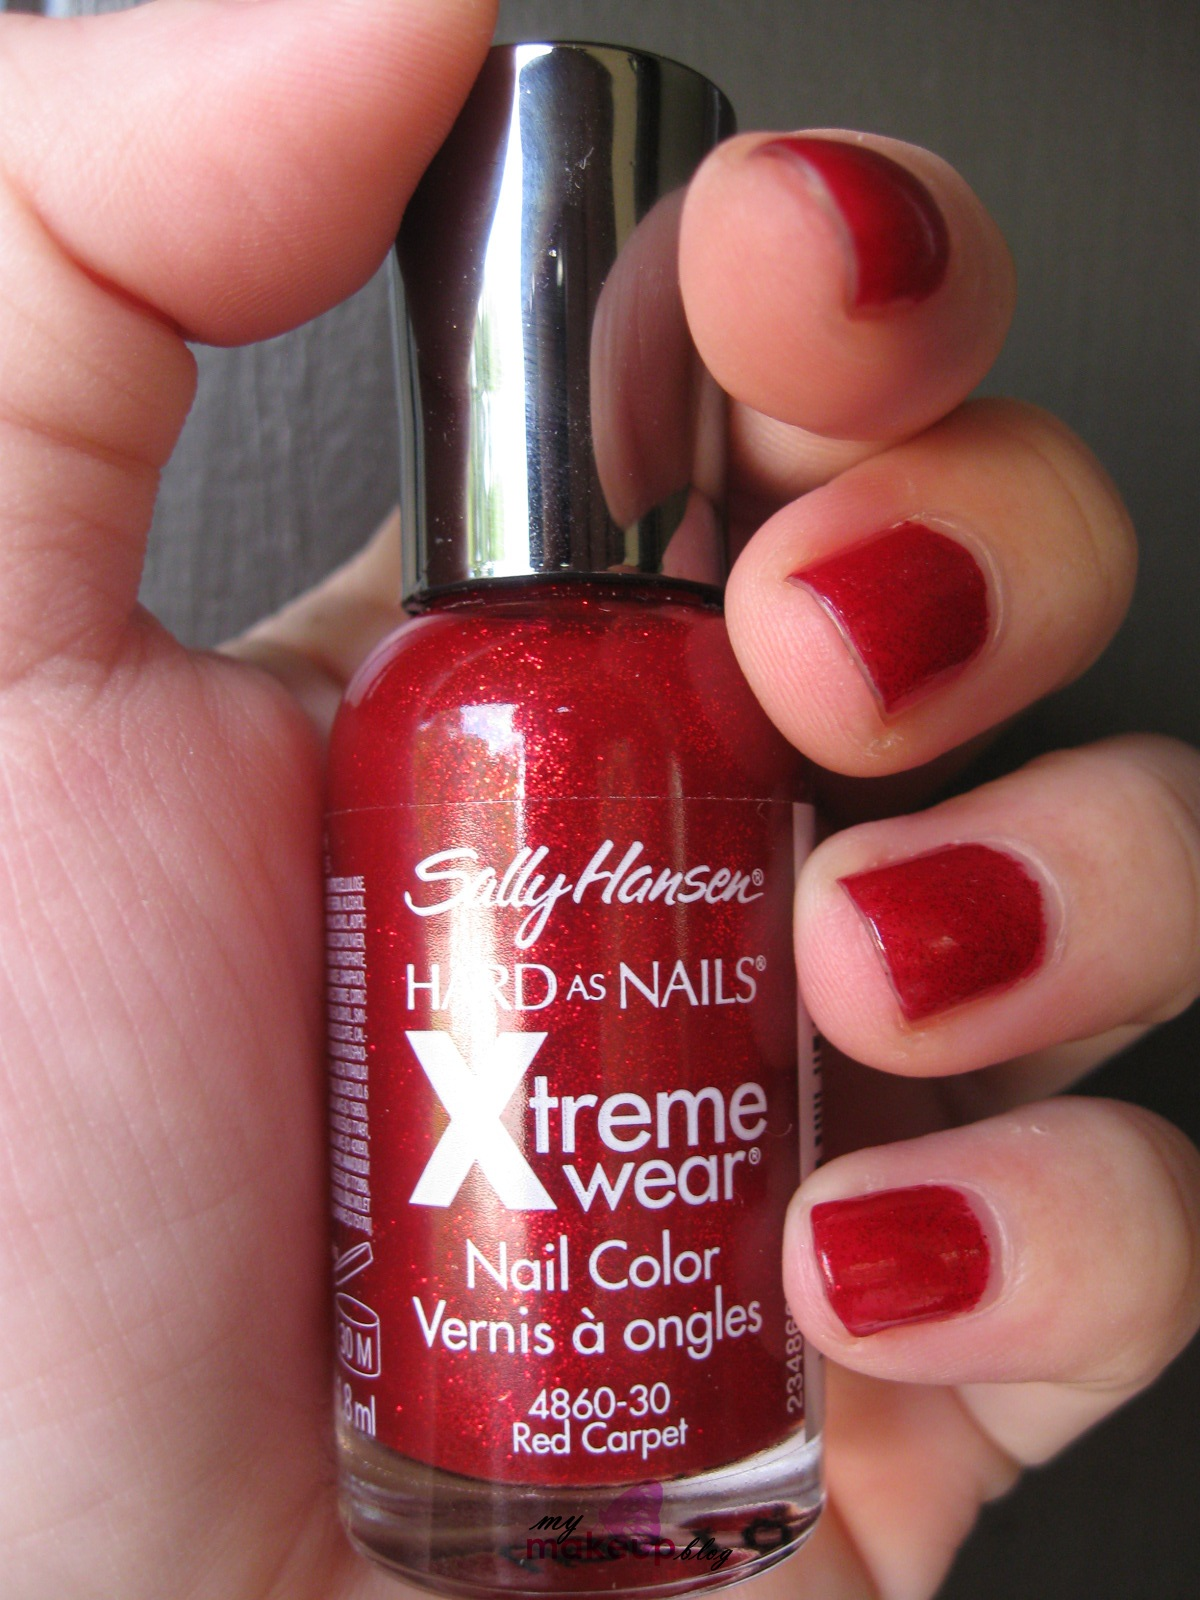 Get Festive with Sally Hansen Xtreme Wear Nail Polish in Red Carpet